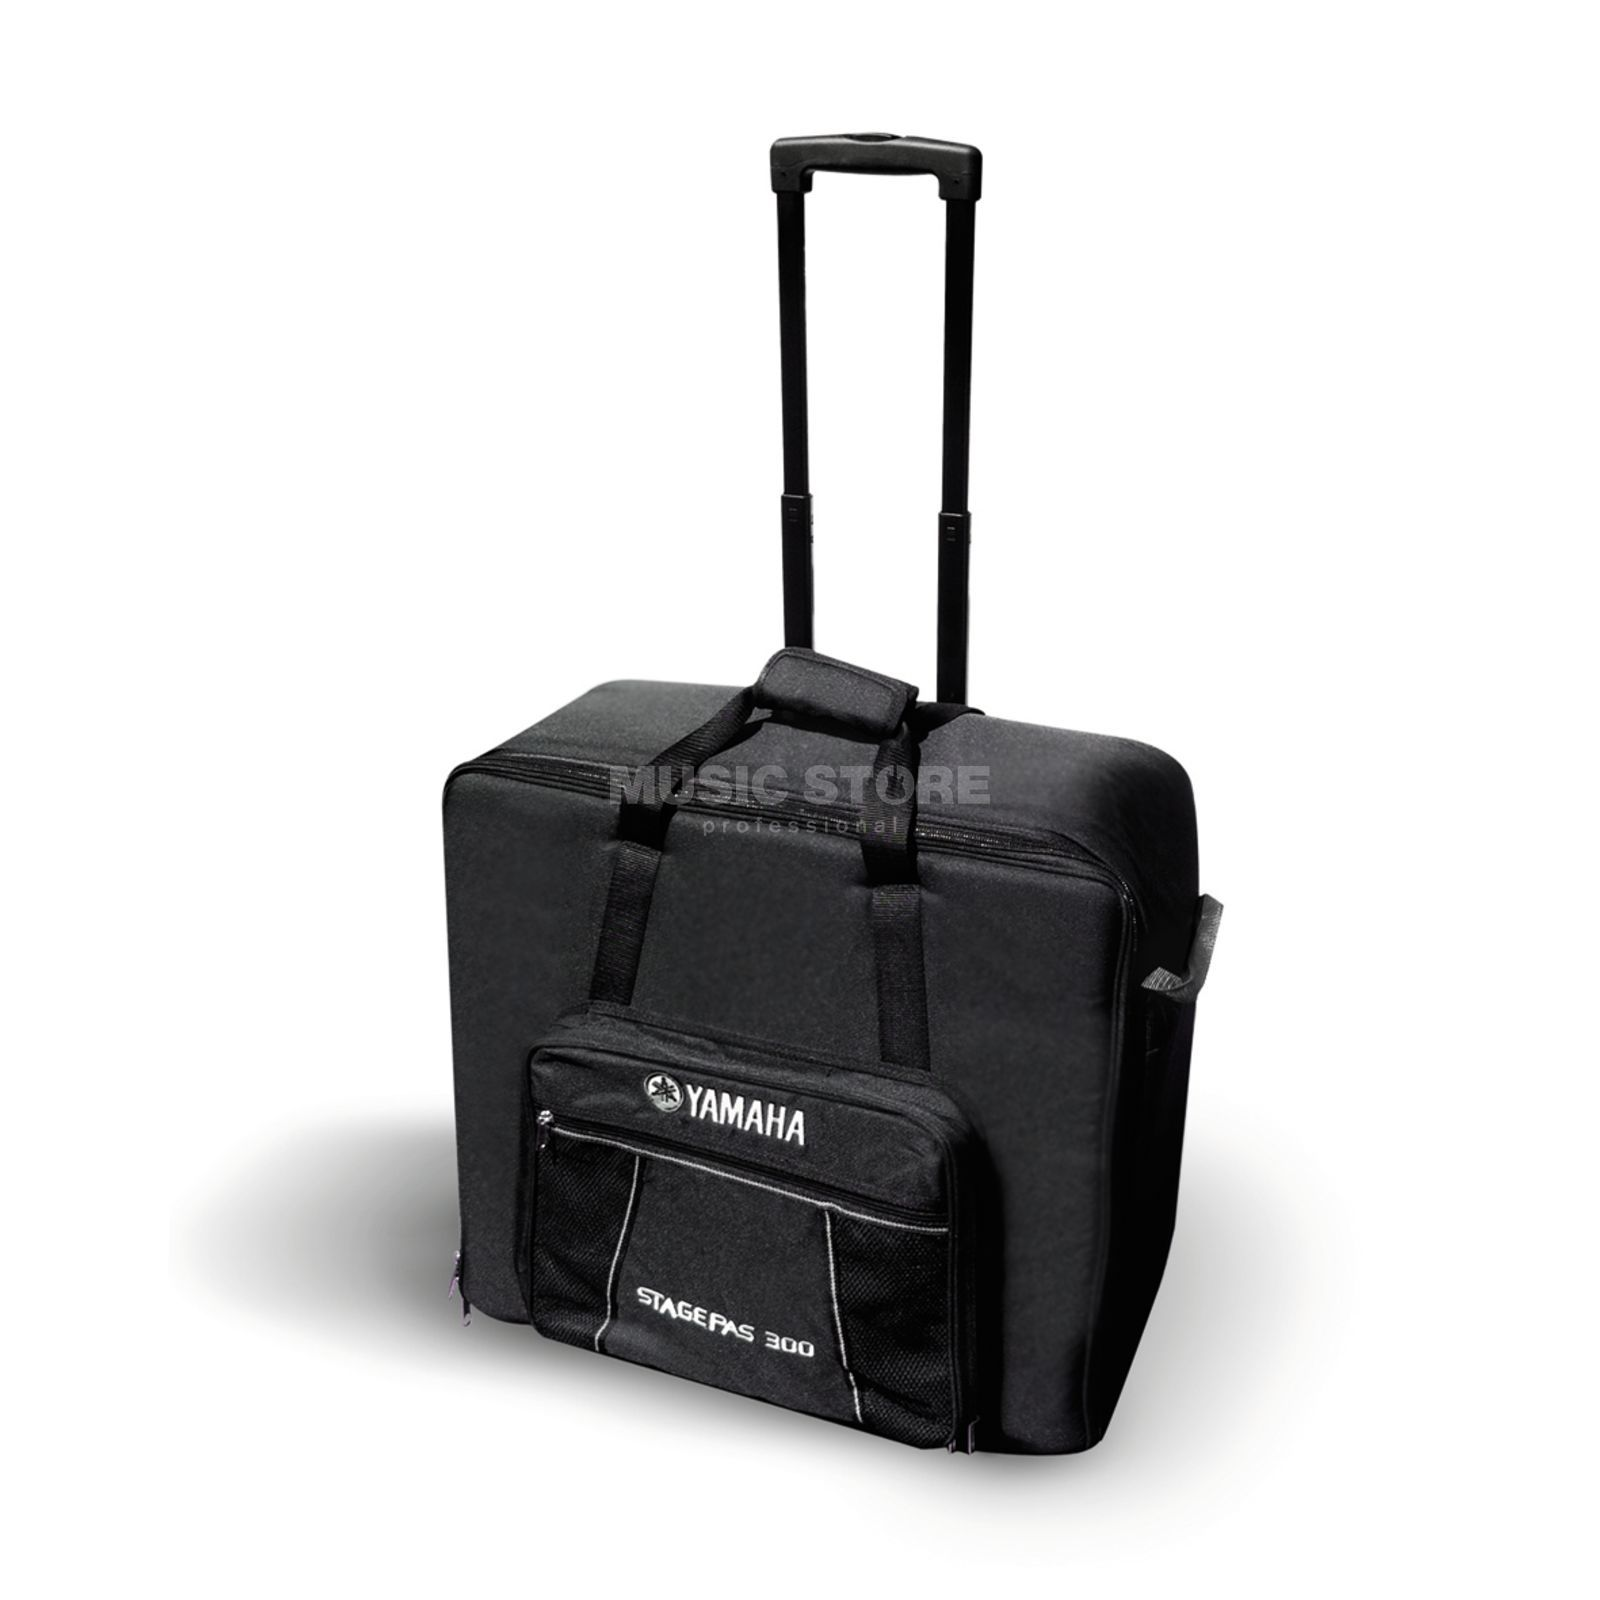 yamaha stagepas 400i rollbag dv247. Black Bedroom Furniture Sets. Home Design Ideas